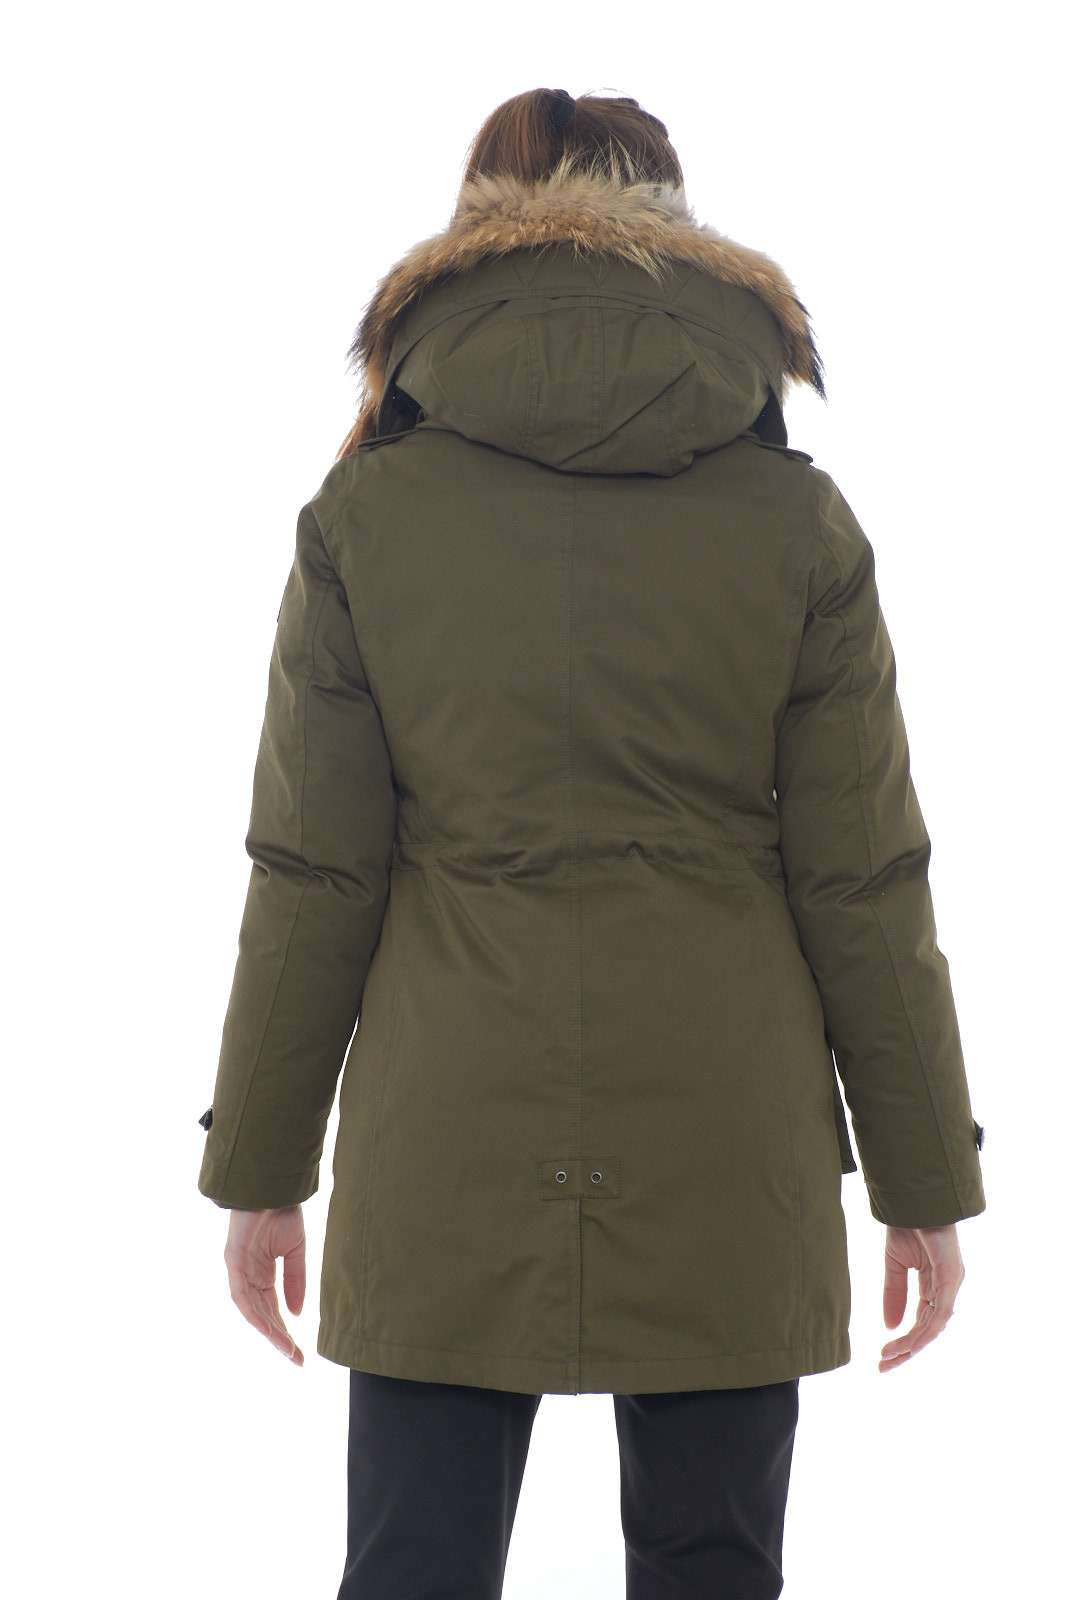 https://www.parmax.com/media/catalog/product/a/i/AI-outlet_parmax-parka-donna-Woolrich-WWCPS2760-C.jpg